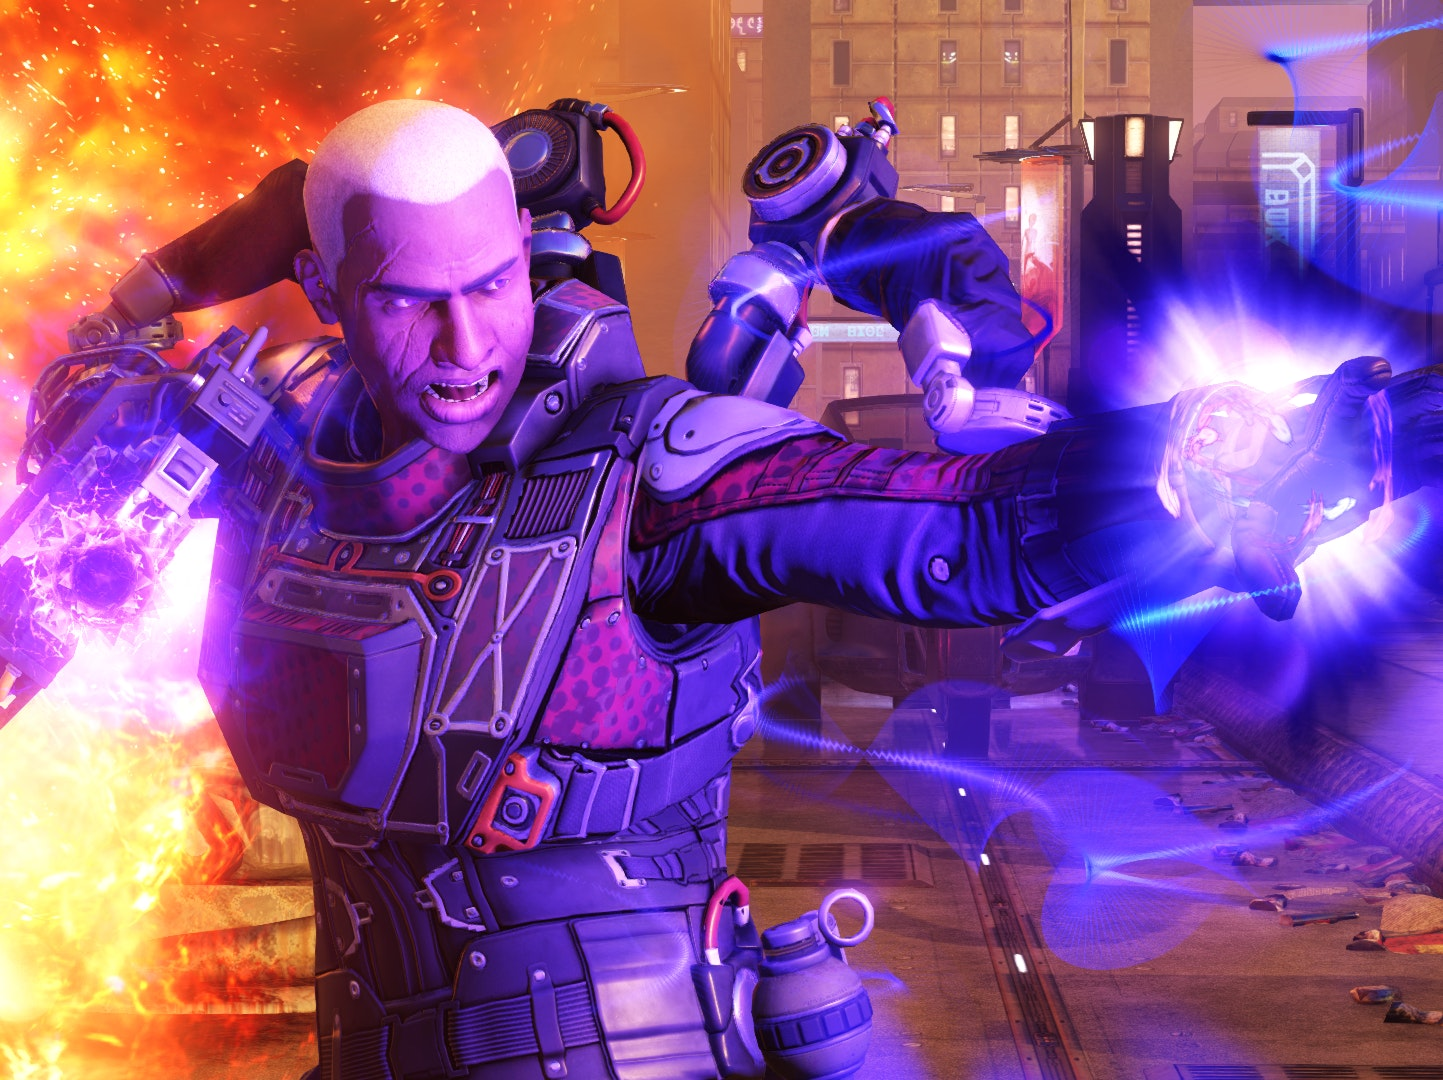 This is actually an XCOM soldier from 'XCOM 2' using psionic abilities to make some alien's day worse.